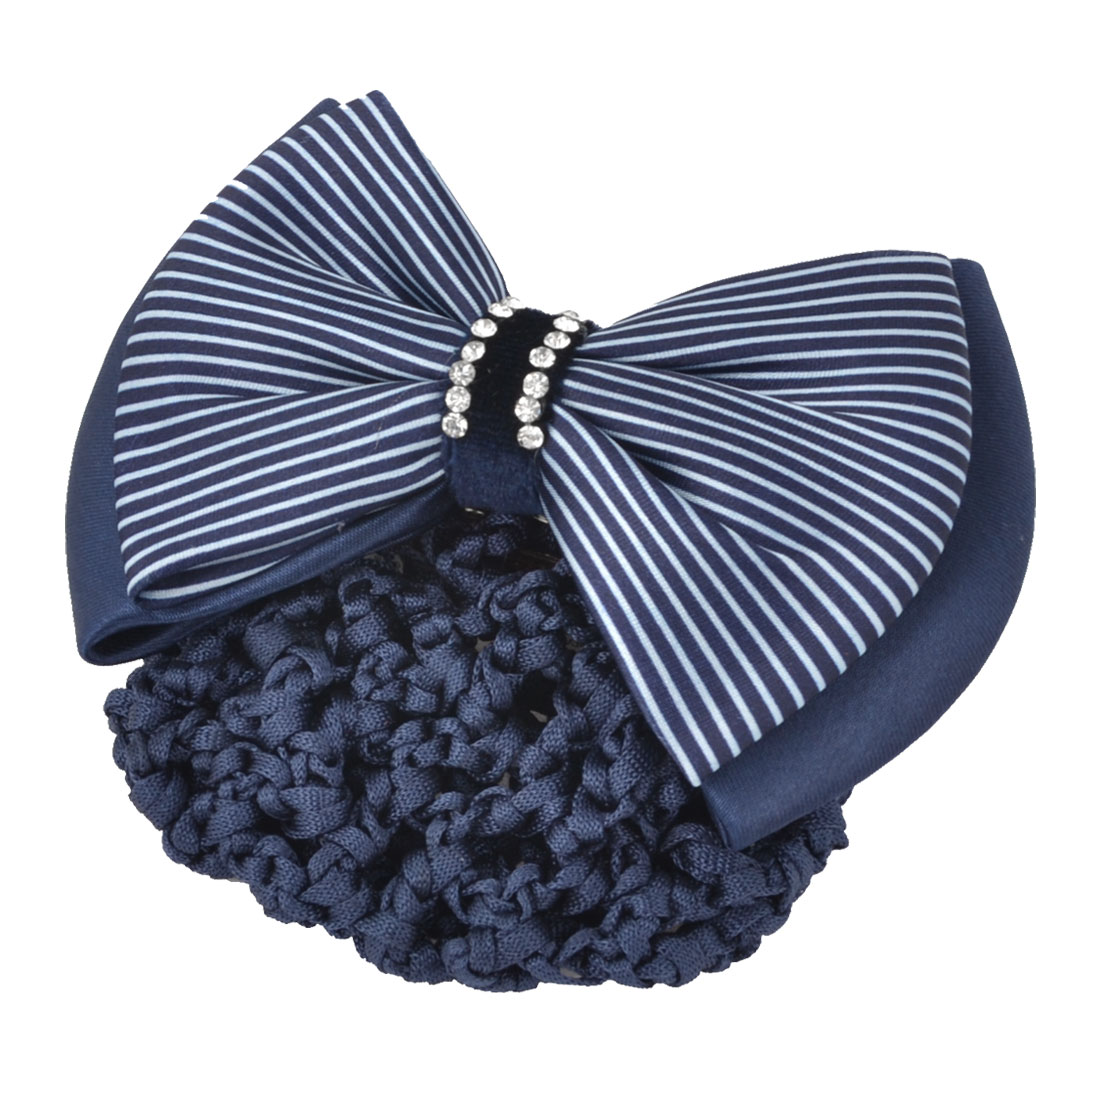 Ladies Glitter Rhinestones Inlaid Striped Polyester Bowknot Decor Hair Barrette Snood Bun Cover Net Blue White